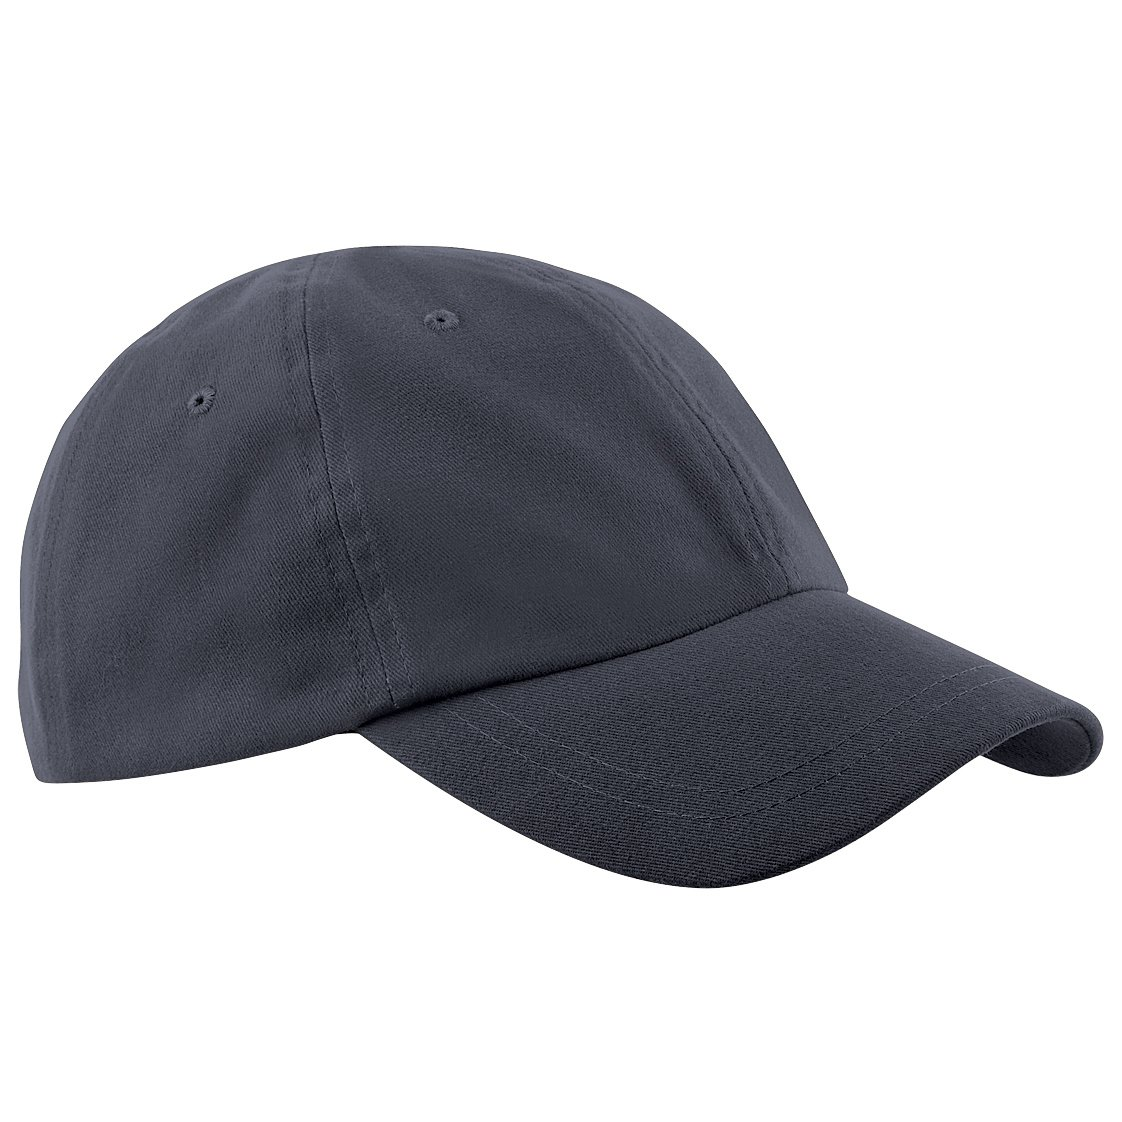 Beechfield Junior Low Profile Baseball Cap / Schoolwear / Headwear (One Size) (Graphite Grey)